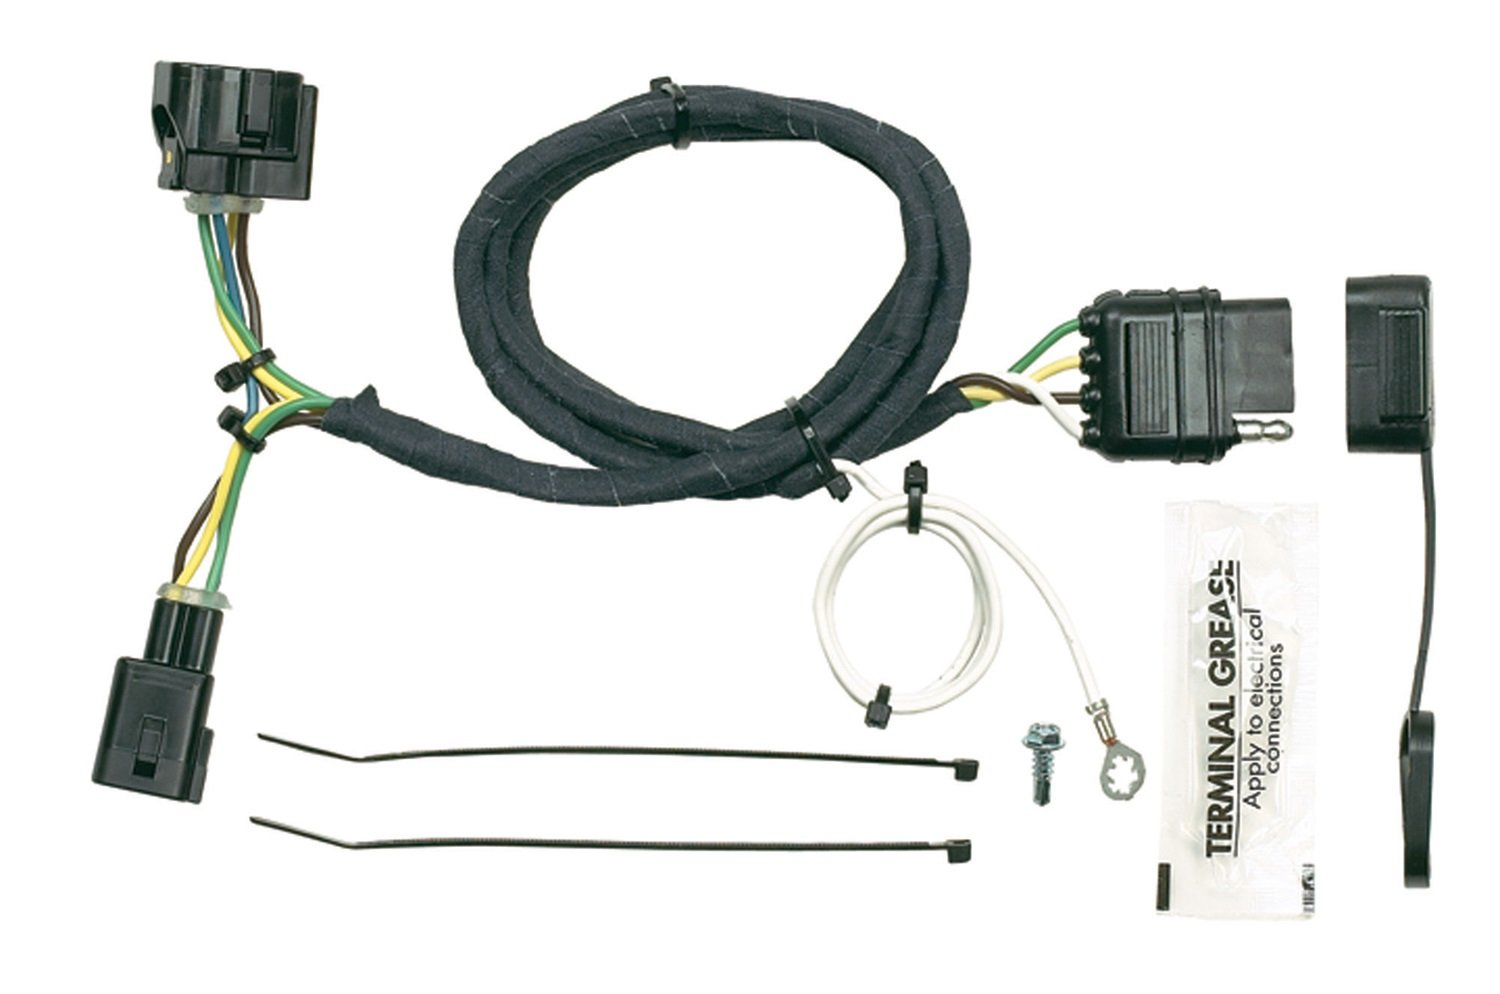 Quick connect trailer wiring harness jeep wrangler